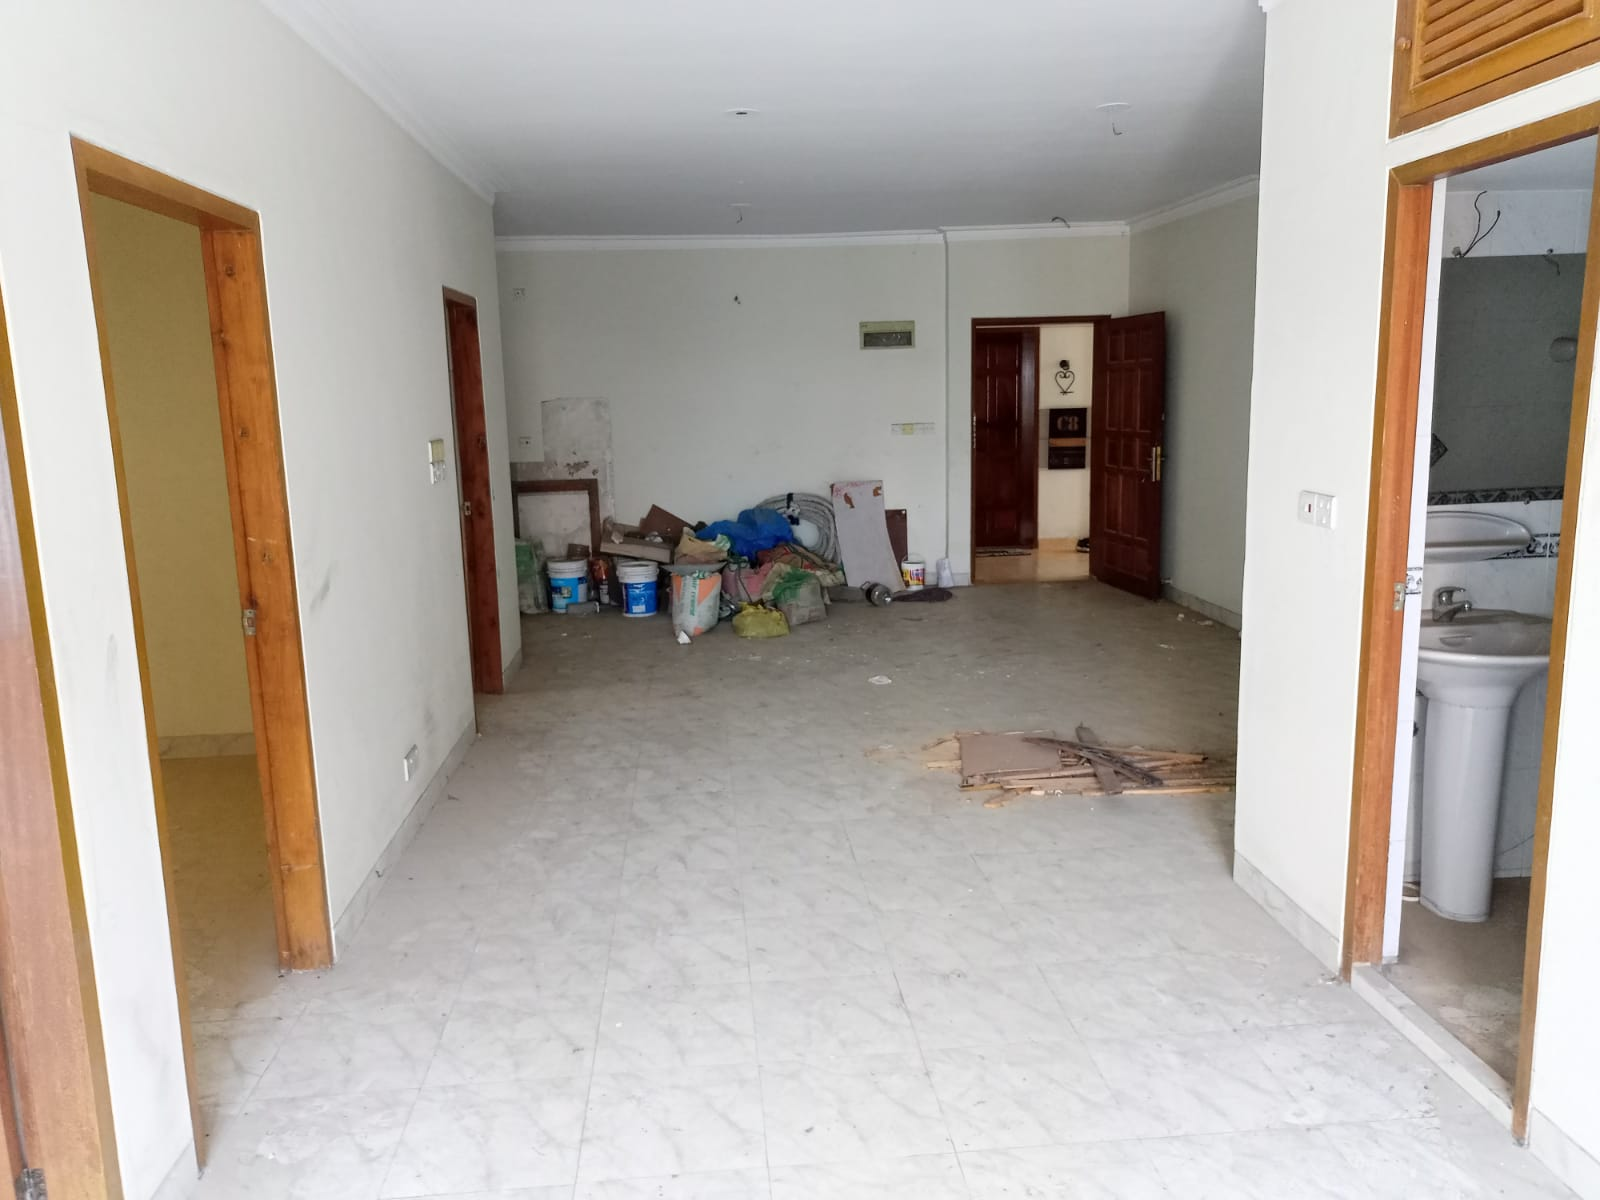 1669-sft-apartment-for-sale-in-green-road-8th-floor-235432